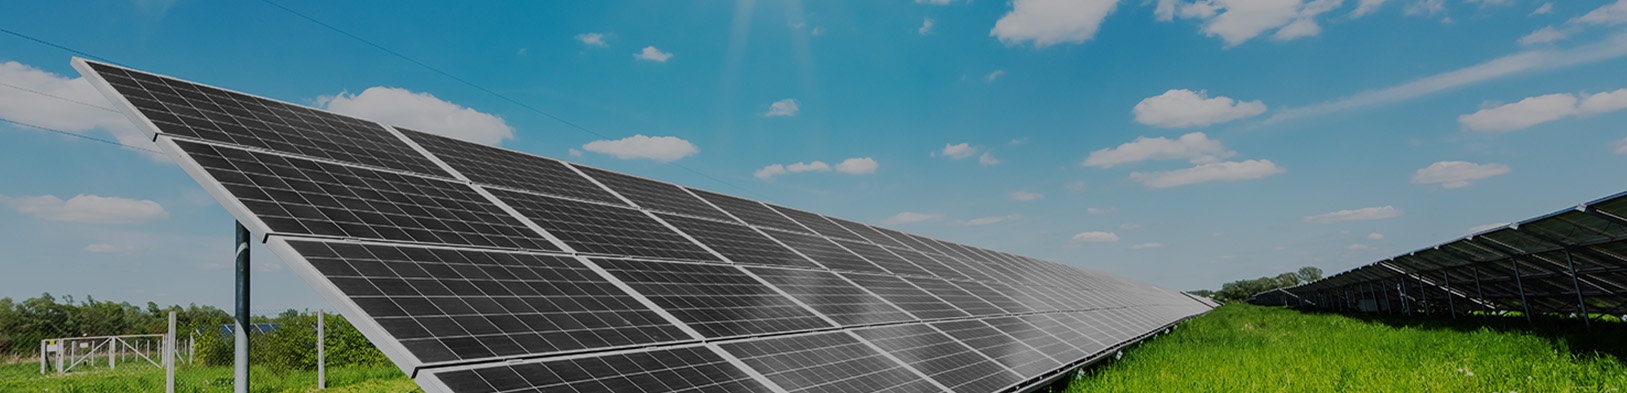 SOLAR INNOVATIONS: THE CHANGING FACE OF SOLAR ENERGY